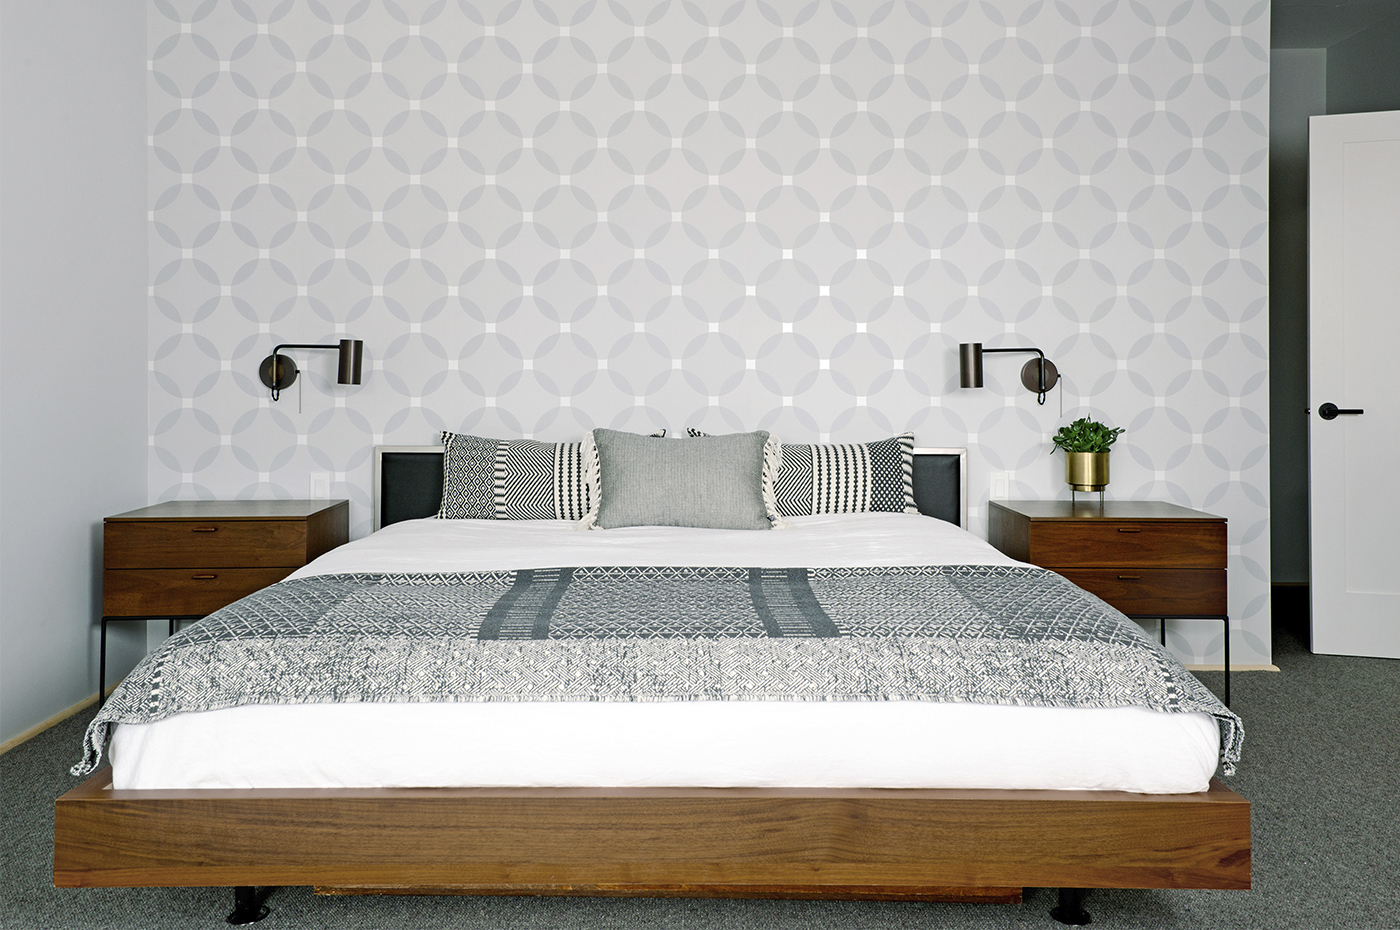 9) master bed